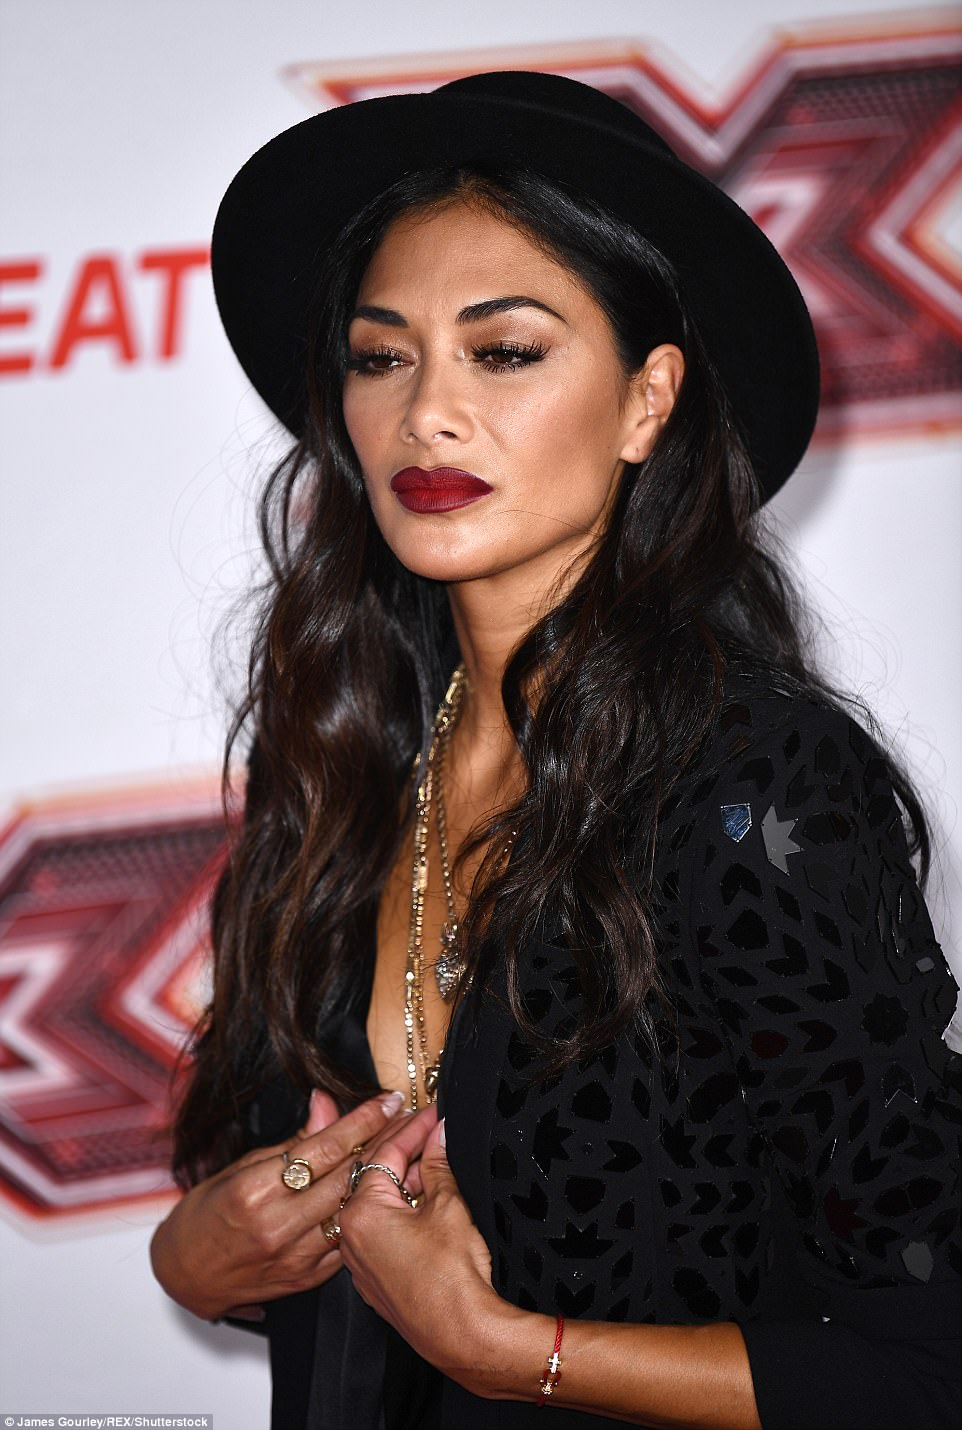 Nicole Scherzinger - Página 8 43B65C3100000578-4836854-Hats_off_The_singer_added_a_dramatic_flair_to_her_look_thanks_to-a-415_1504107901497